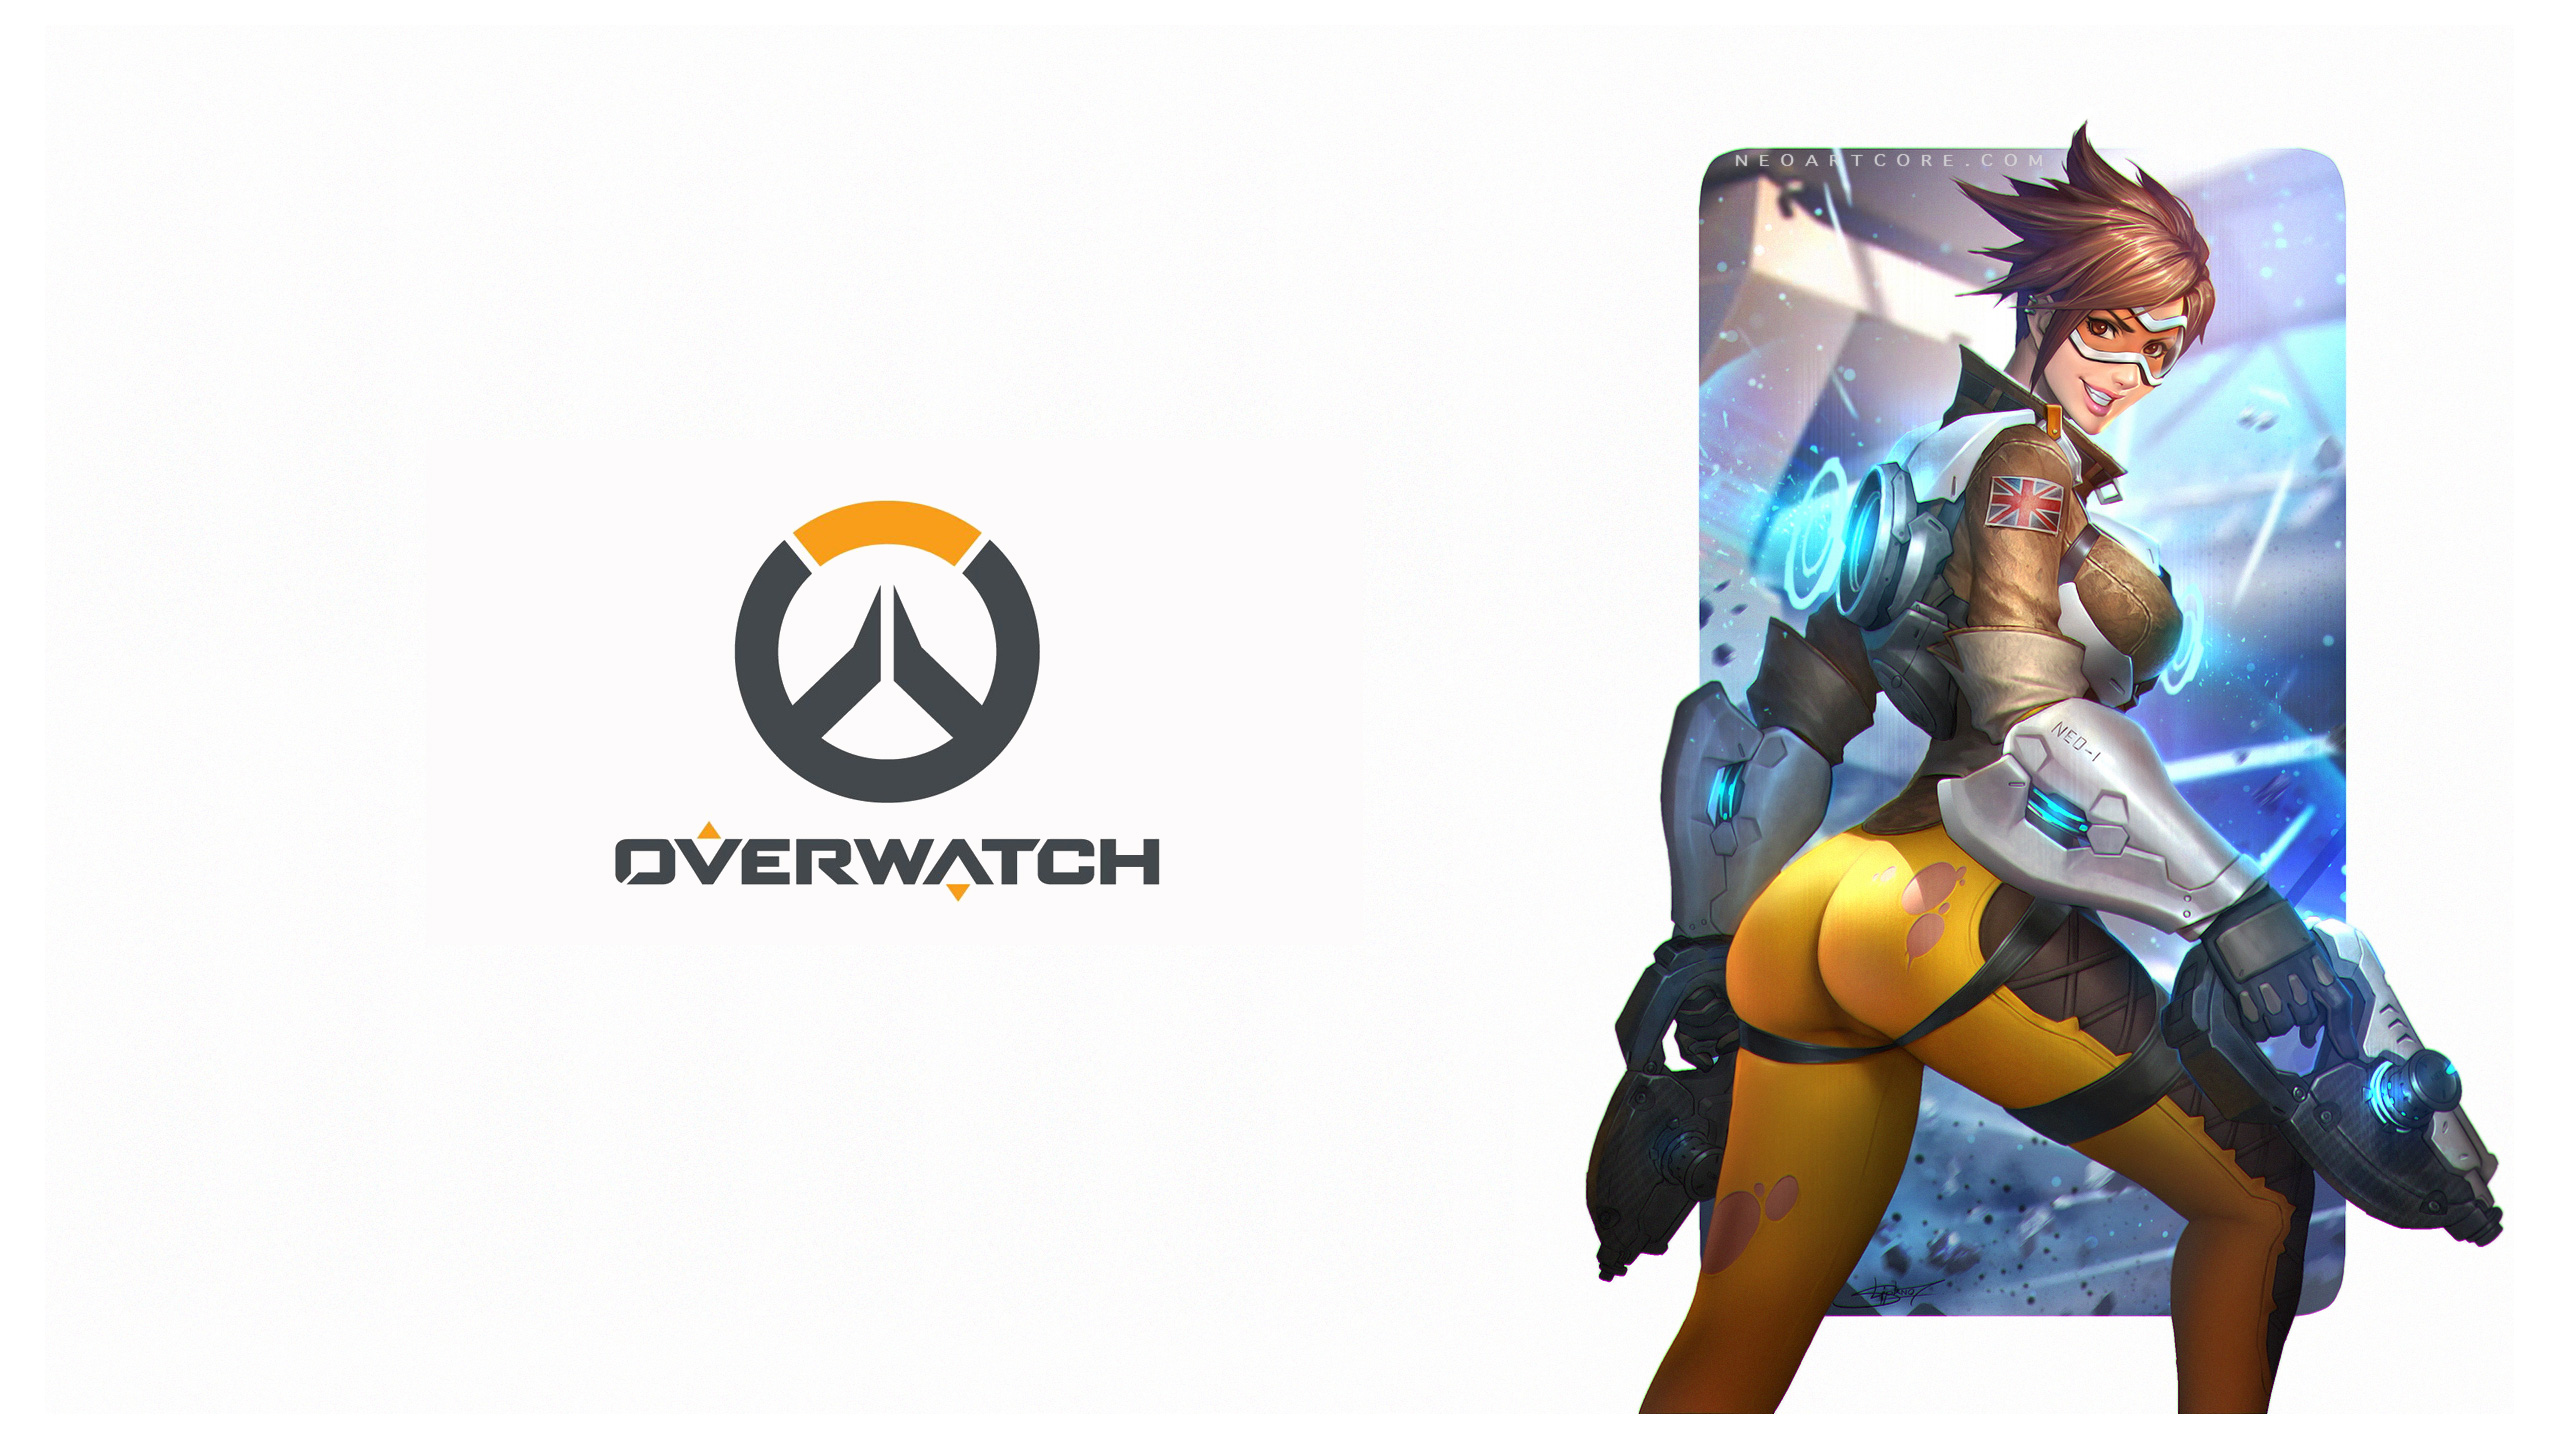 Overwatch Tracer Artwork Wallpapers HD Wallpapers 2560x1440